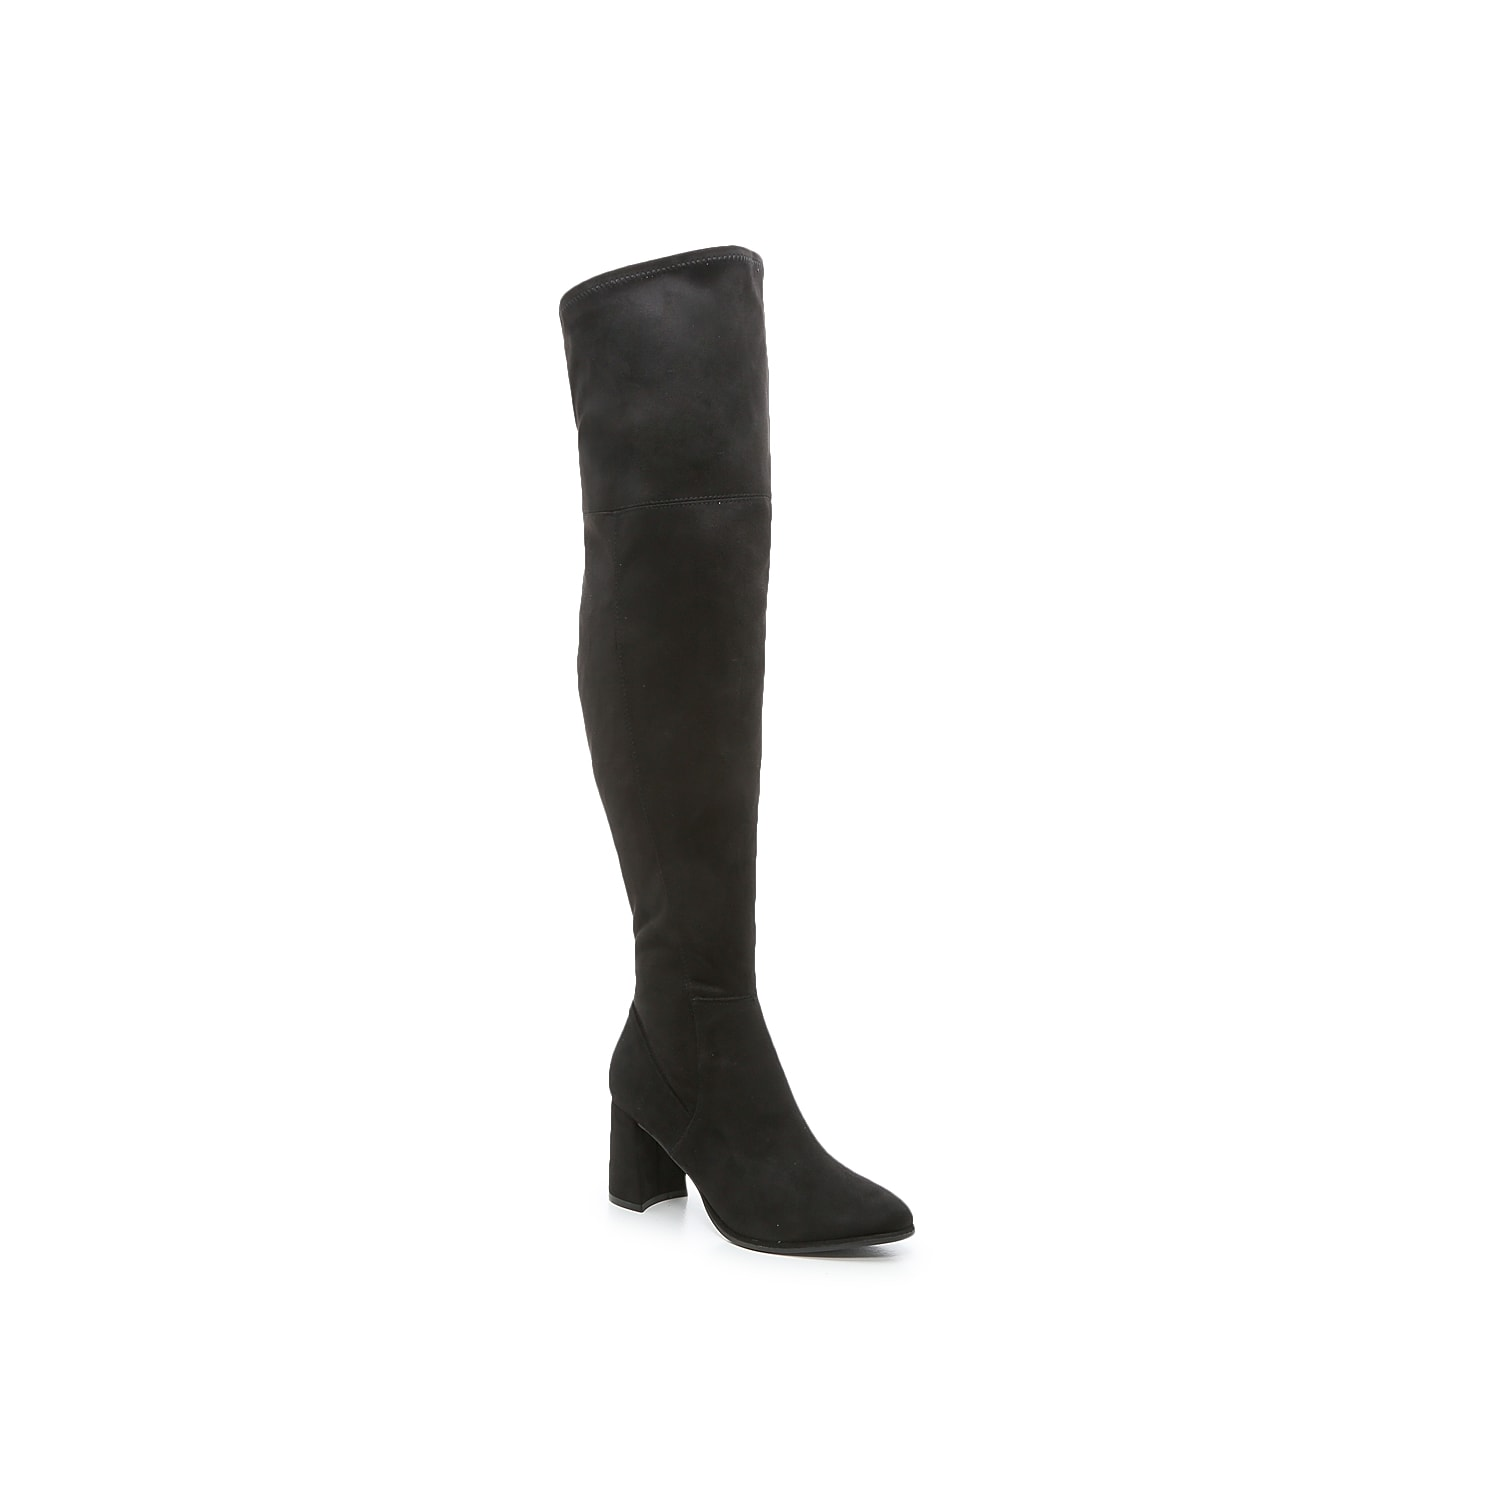 The Darton OTK boot from Marc Fisher has a sultry, skintight silhouette that you can pair with any mini skirt or cold weather look! A hint of stretch in topline provides pull-on comfort and the U-cutout back widens for a comfortable yet fitted appearance on the upper leg. Click here for Boot Measuring Guide.